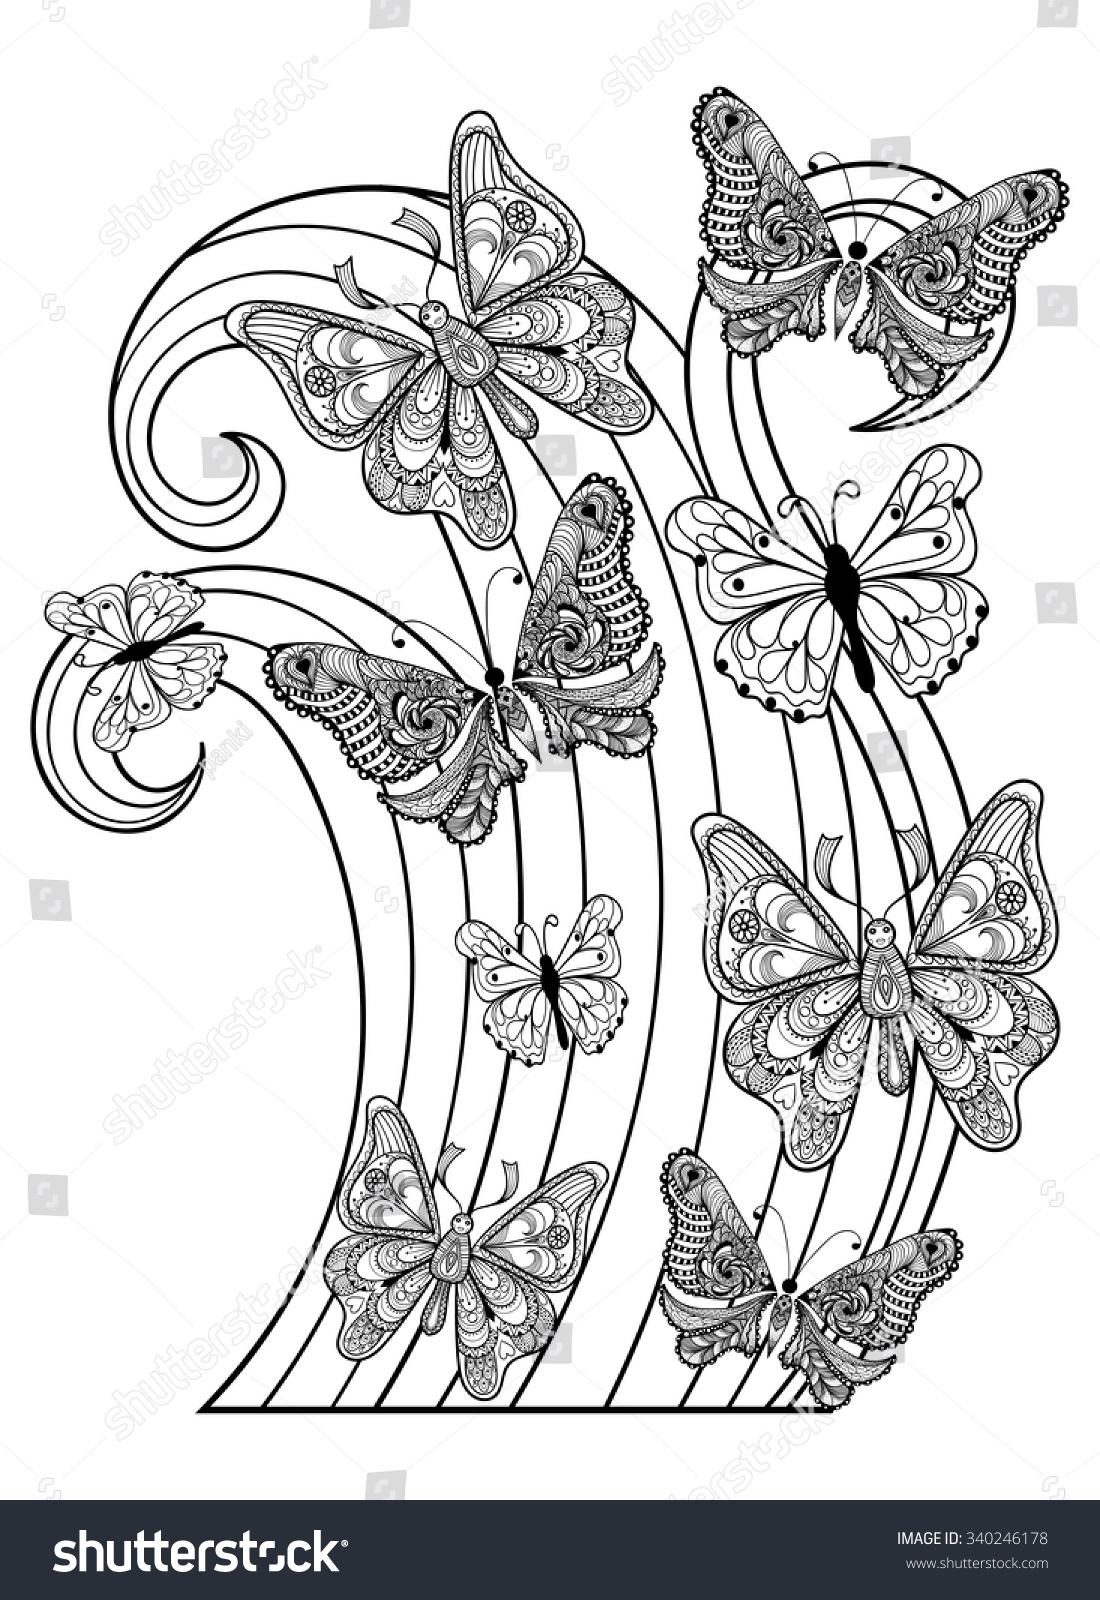 Coloring pages for adults butterflies - Coloring Pages Of Butterflies For Adults Zentangle Vector Flying Butterflies For Adult Anti Stress Coloring